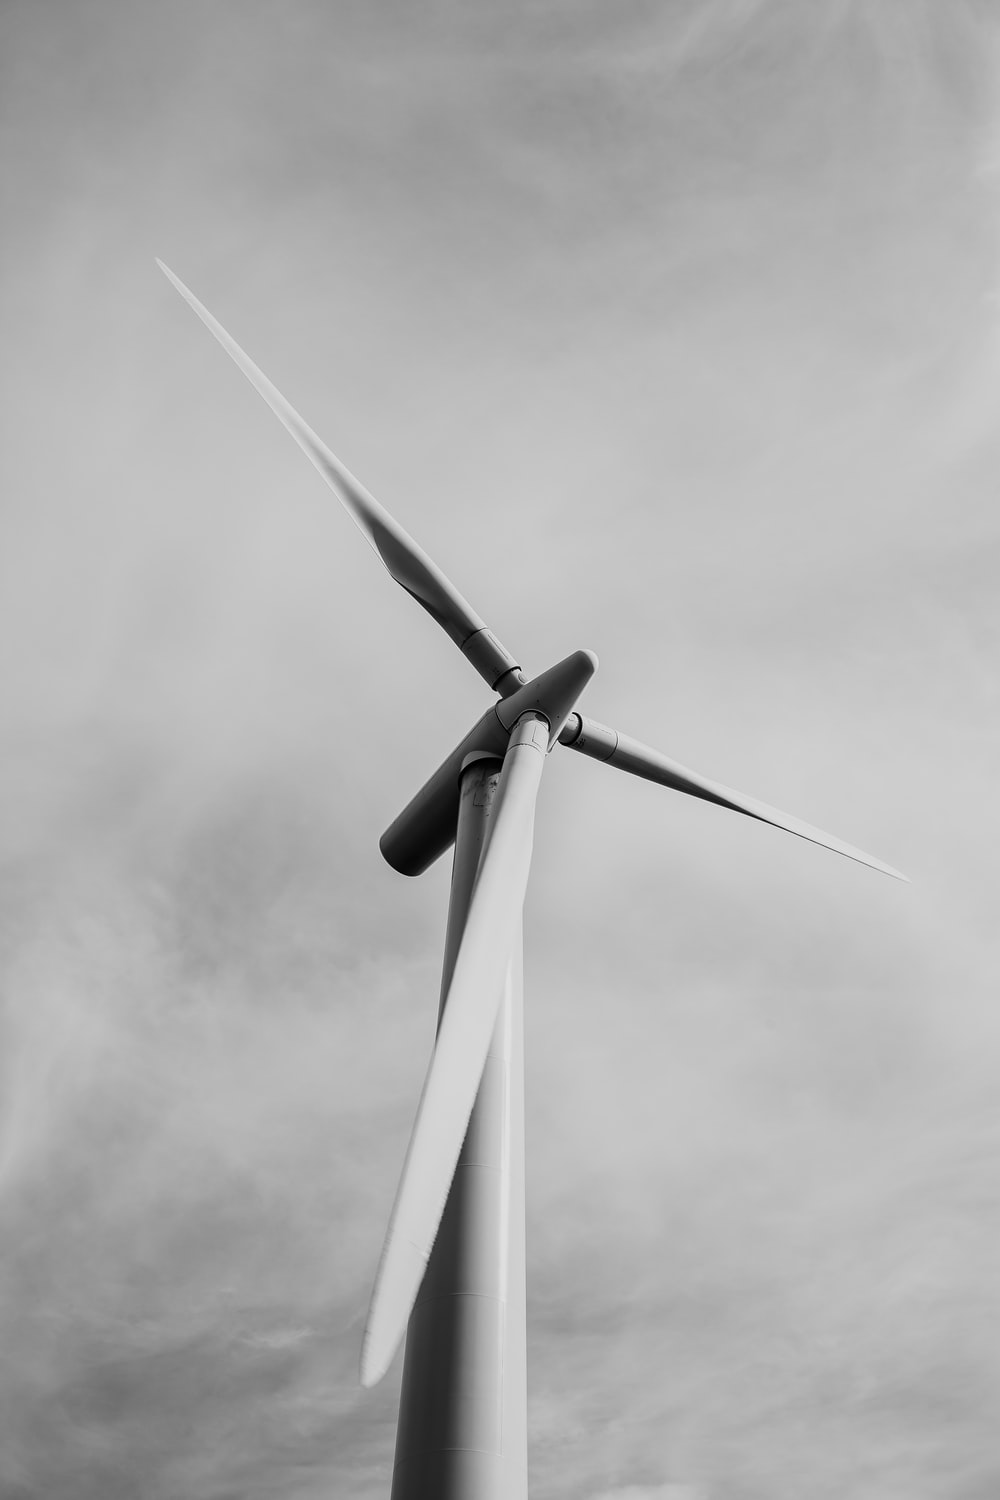 low-angle grayscale photography of a windmill